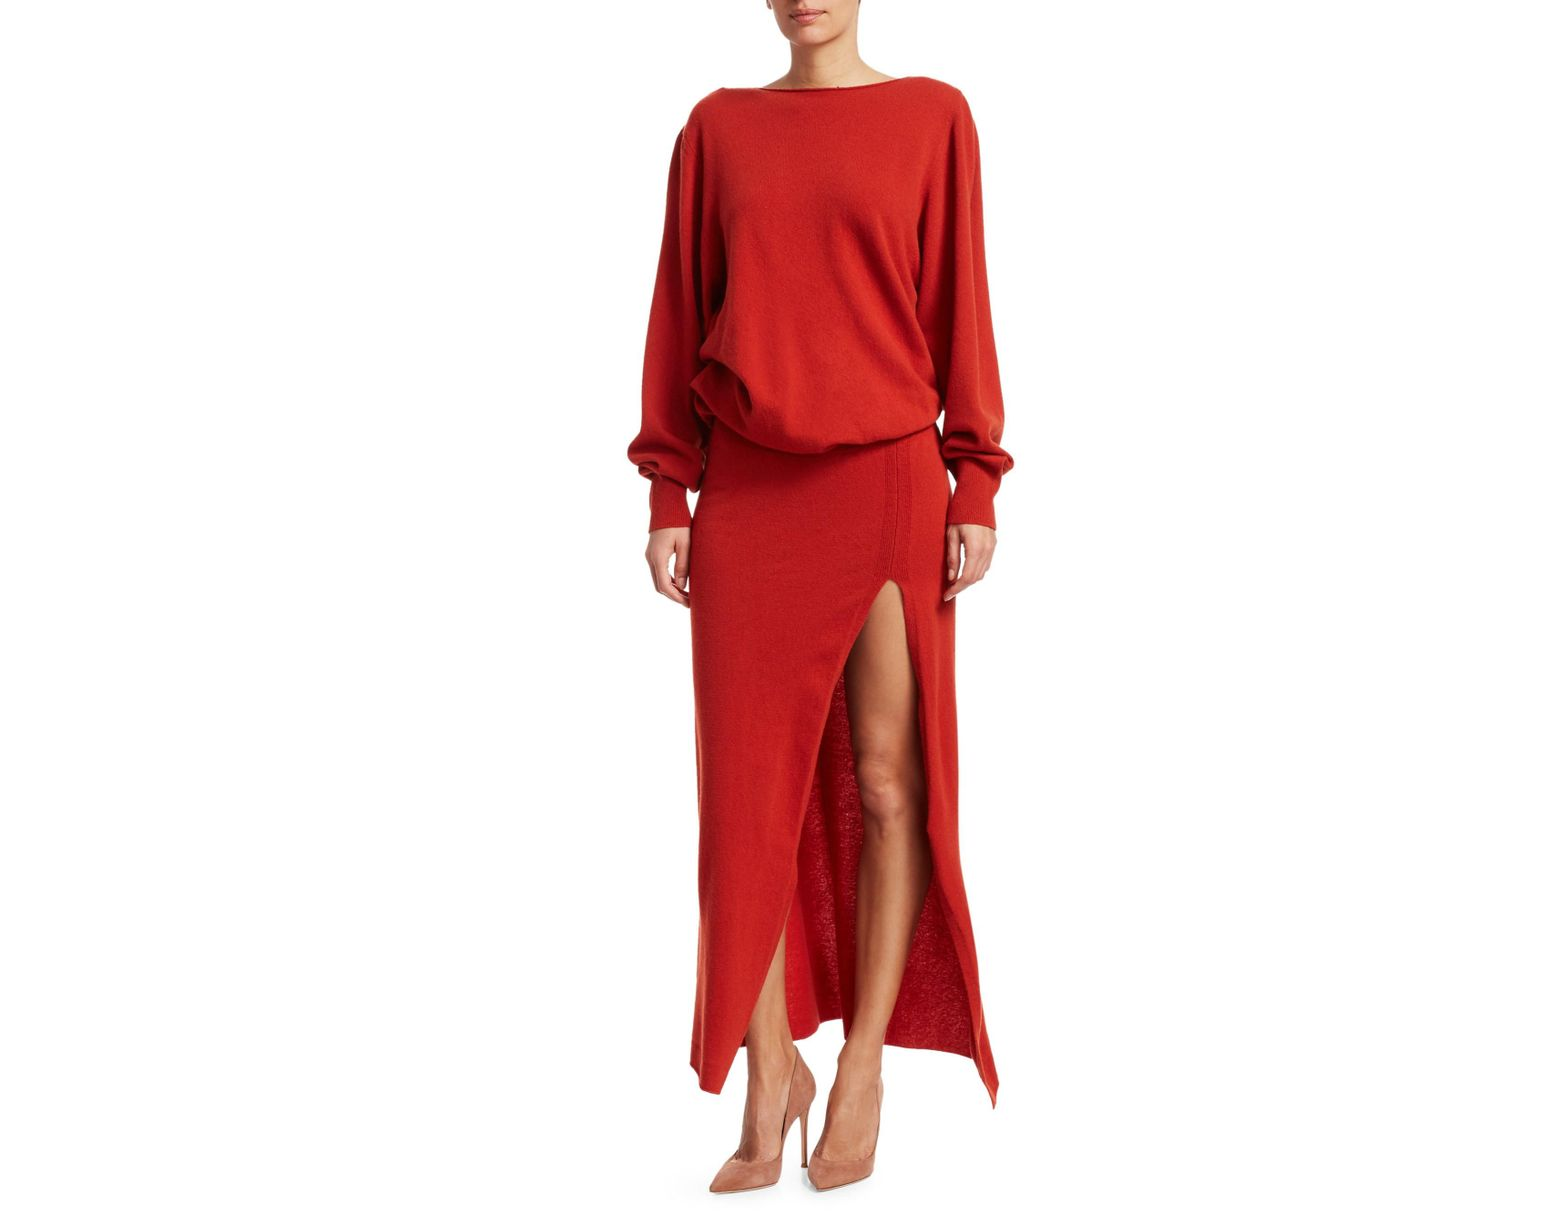 ce6457de5cc Lyst - Jacquemus Women s Jemaa Side Slit Maxi Sweater Dress - Red in Red -  Save 68%